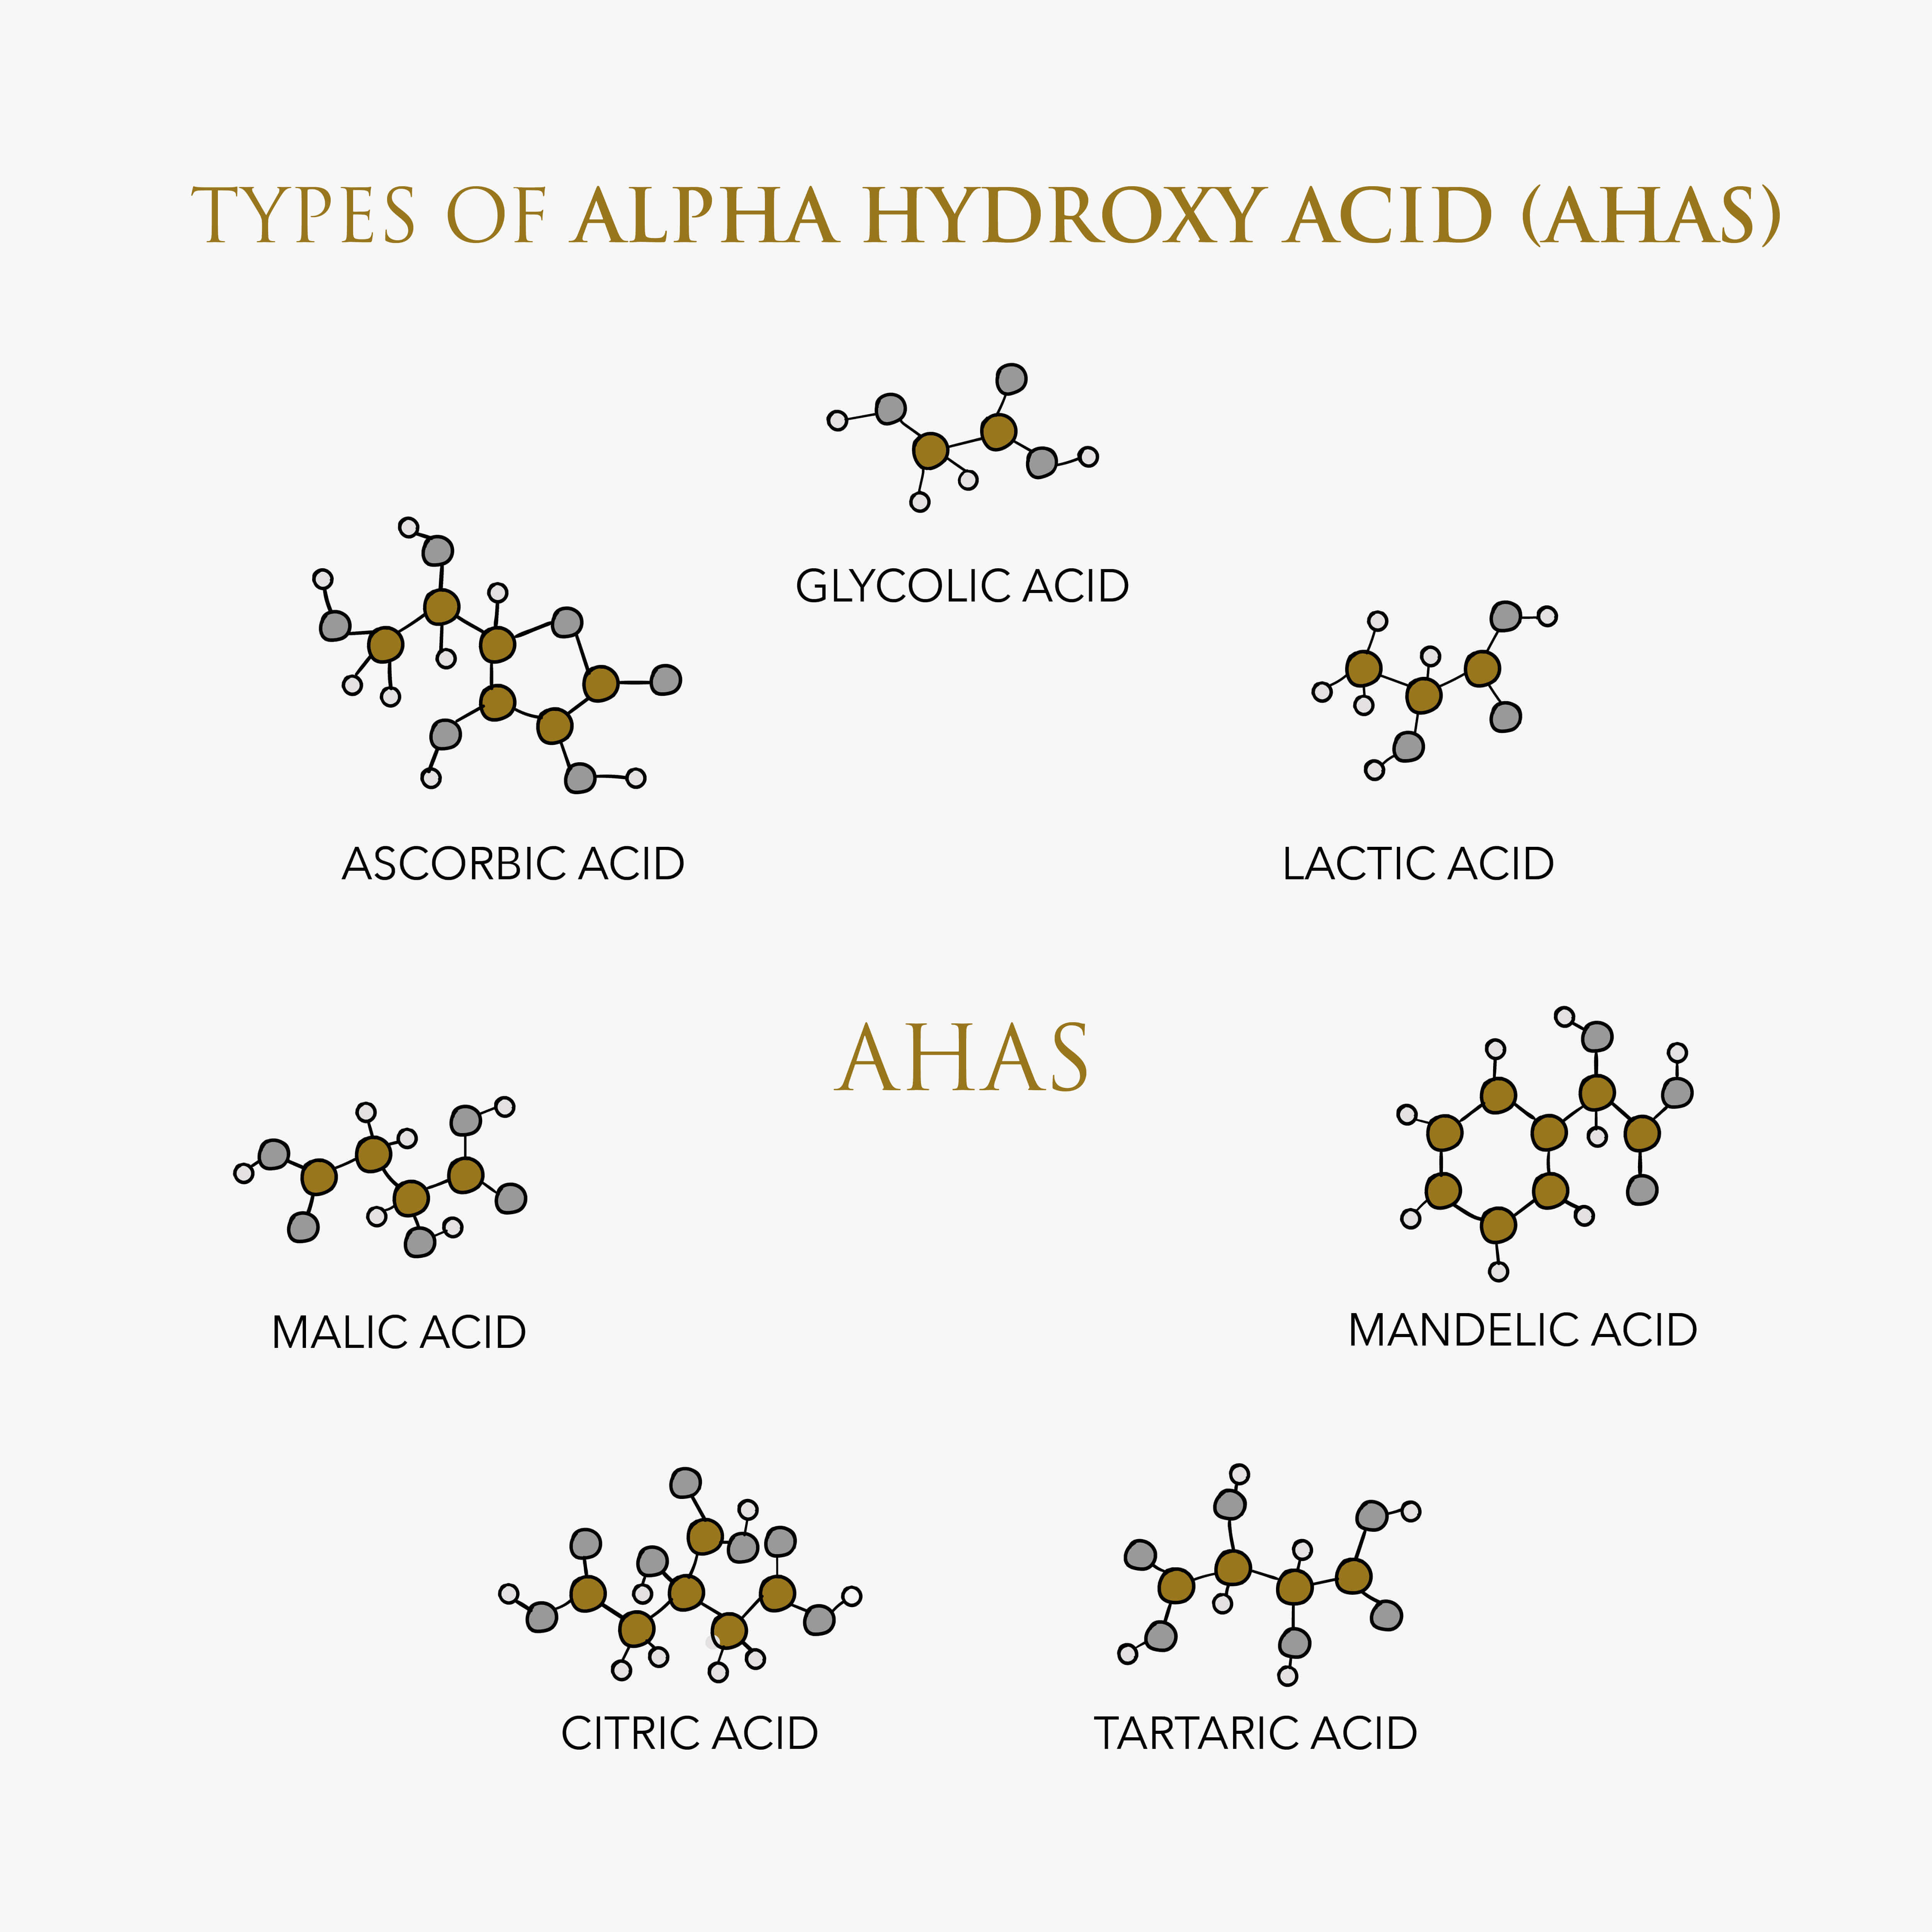 Infographic showing different types of AHAs